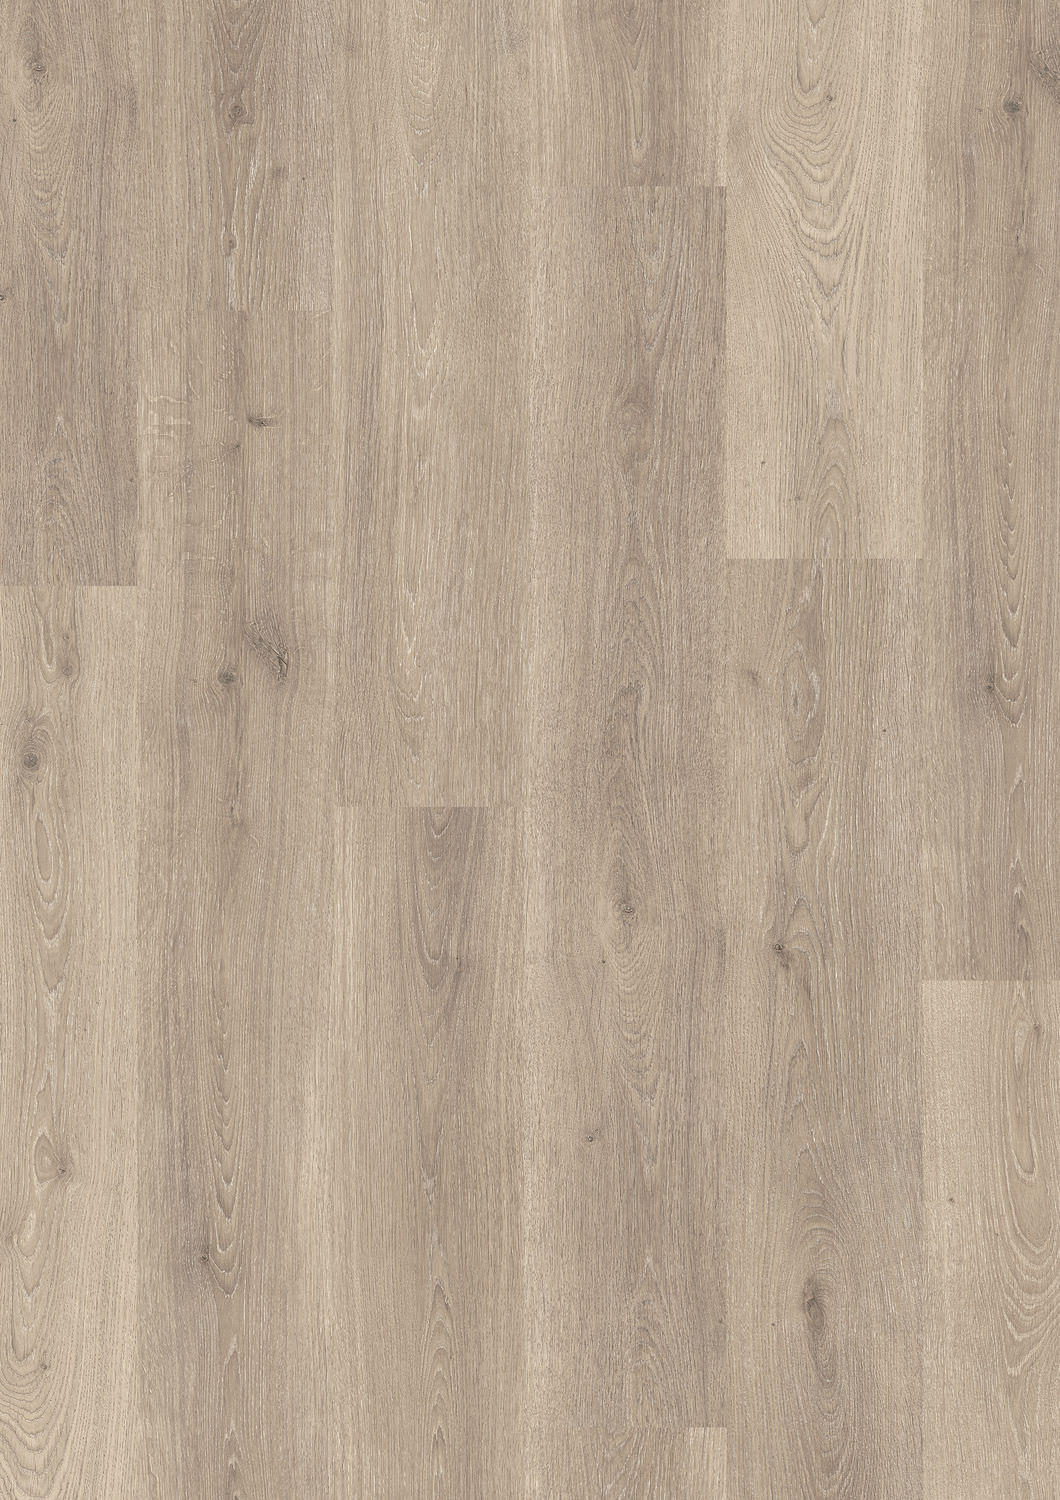 hdf laminate flooring clickfit wood look commercial premium oak l020101801